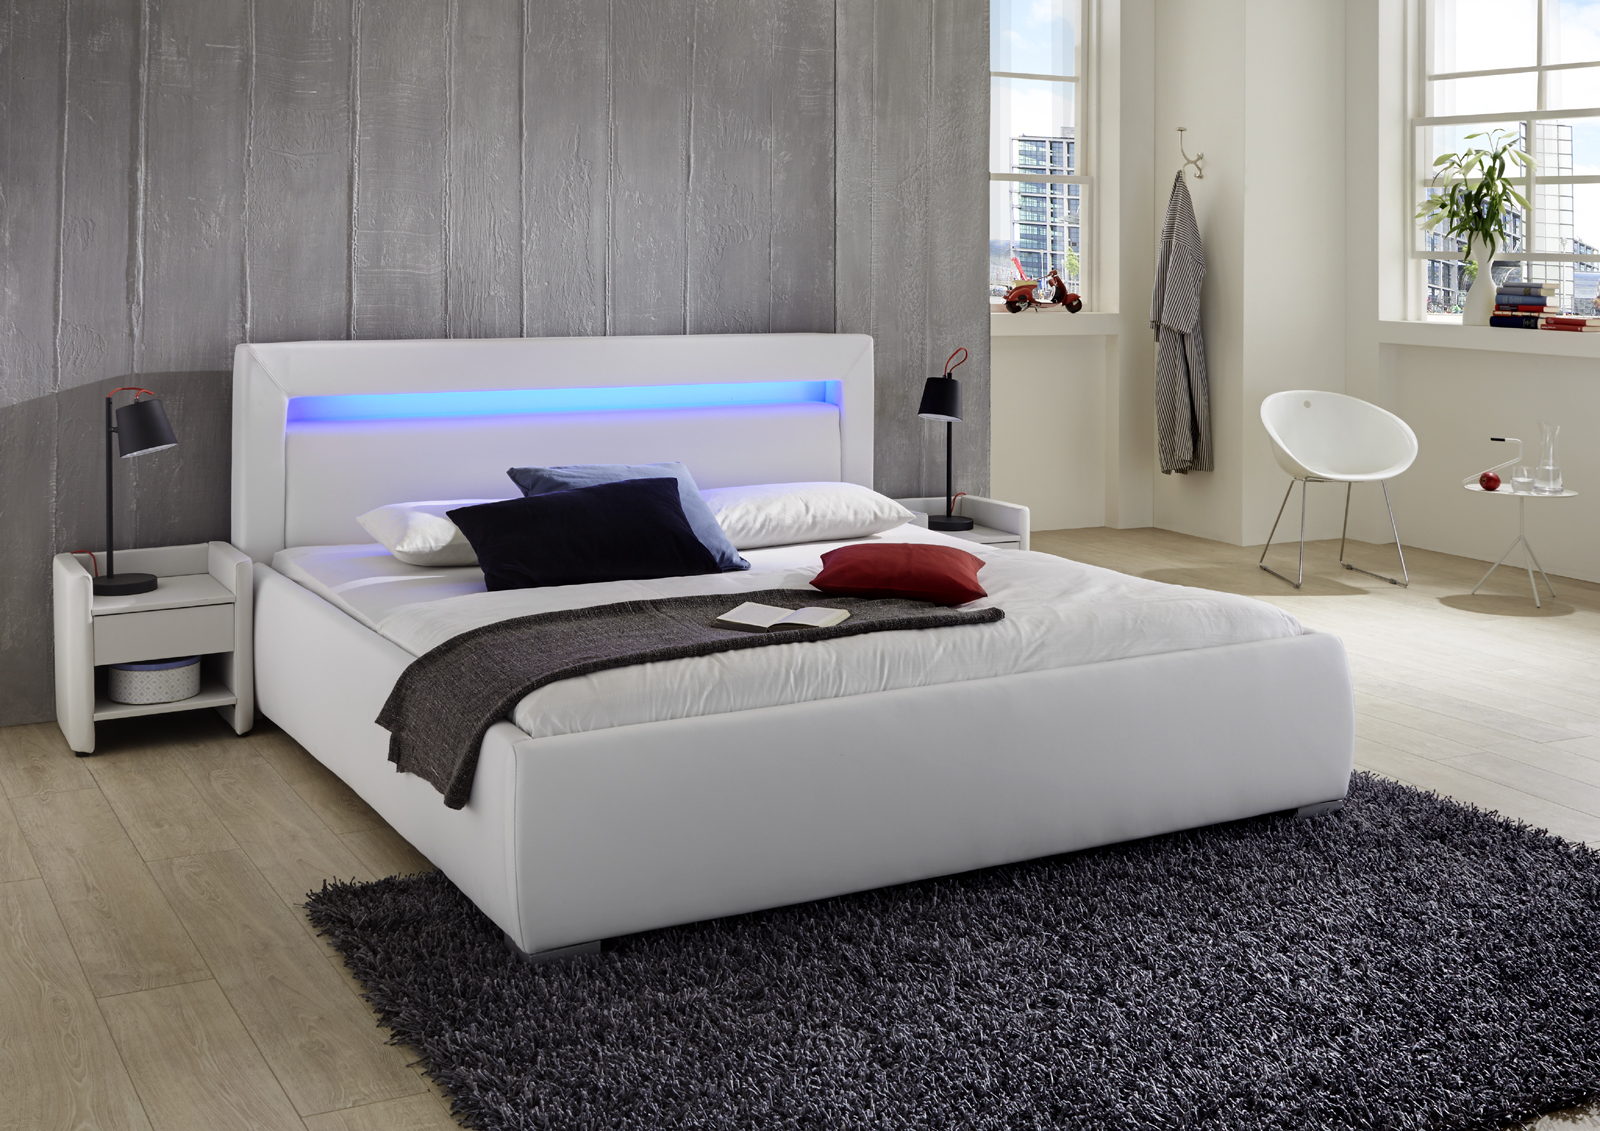 sam polsterbett 160 cm wei lumina led g nstig. Black Bedroom Furniture Sets. Home Design Ideas